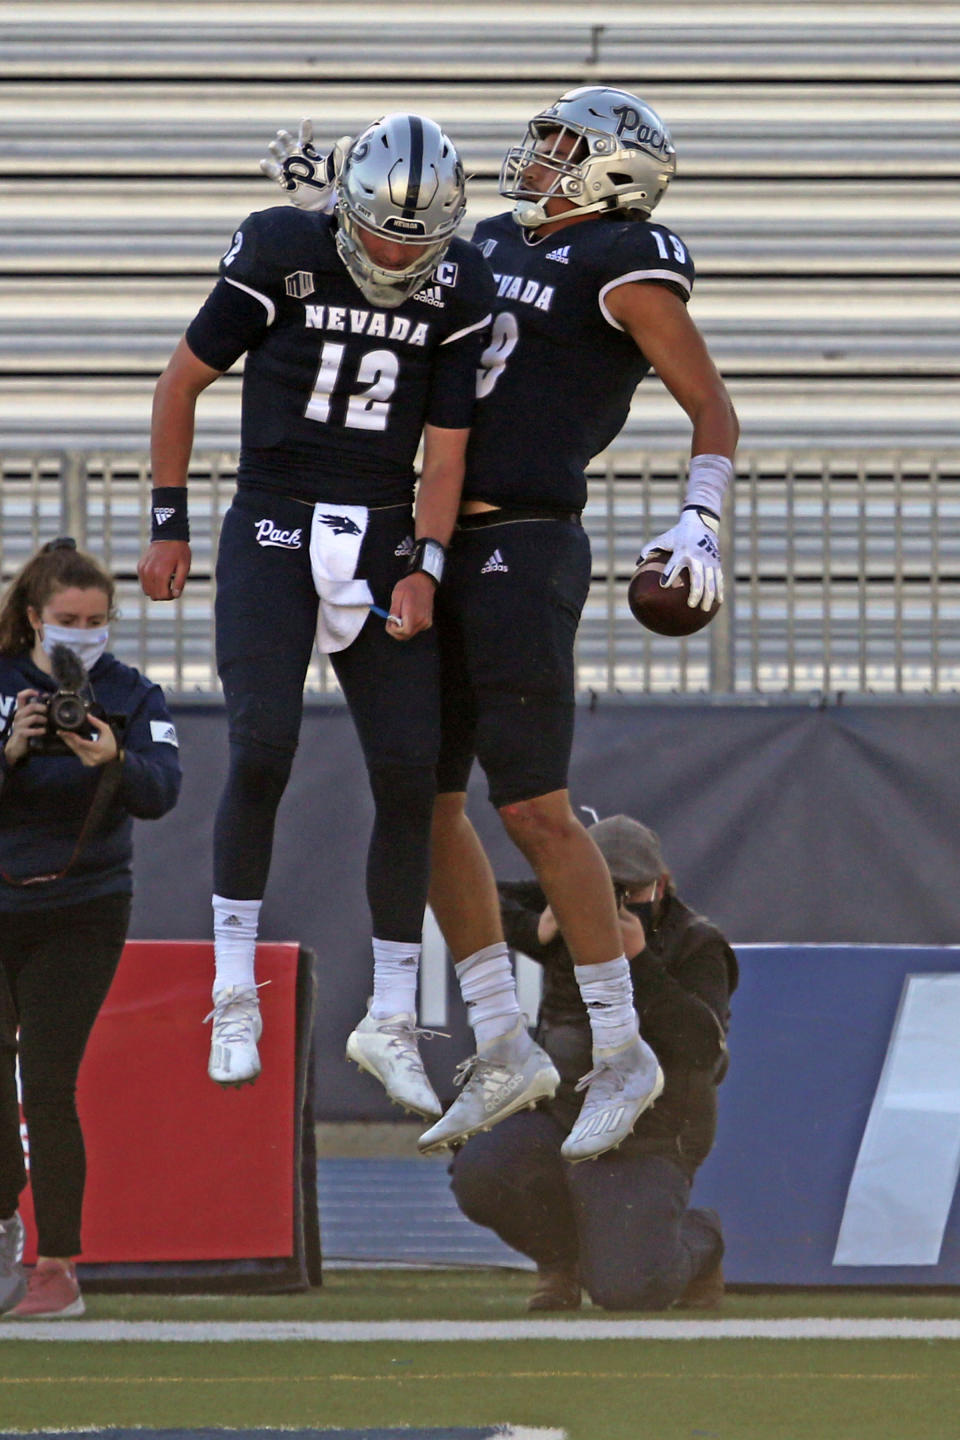 Nevada quarterback Carson Strong (12) celebrates with wide receiver Cole Turner after a touchdown pass against San Diego State during an NCAA college football game Saturday, Nov. 21, 2020, in Reno, Nev. (AP Photo/Lance Iversen)